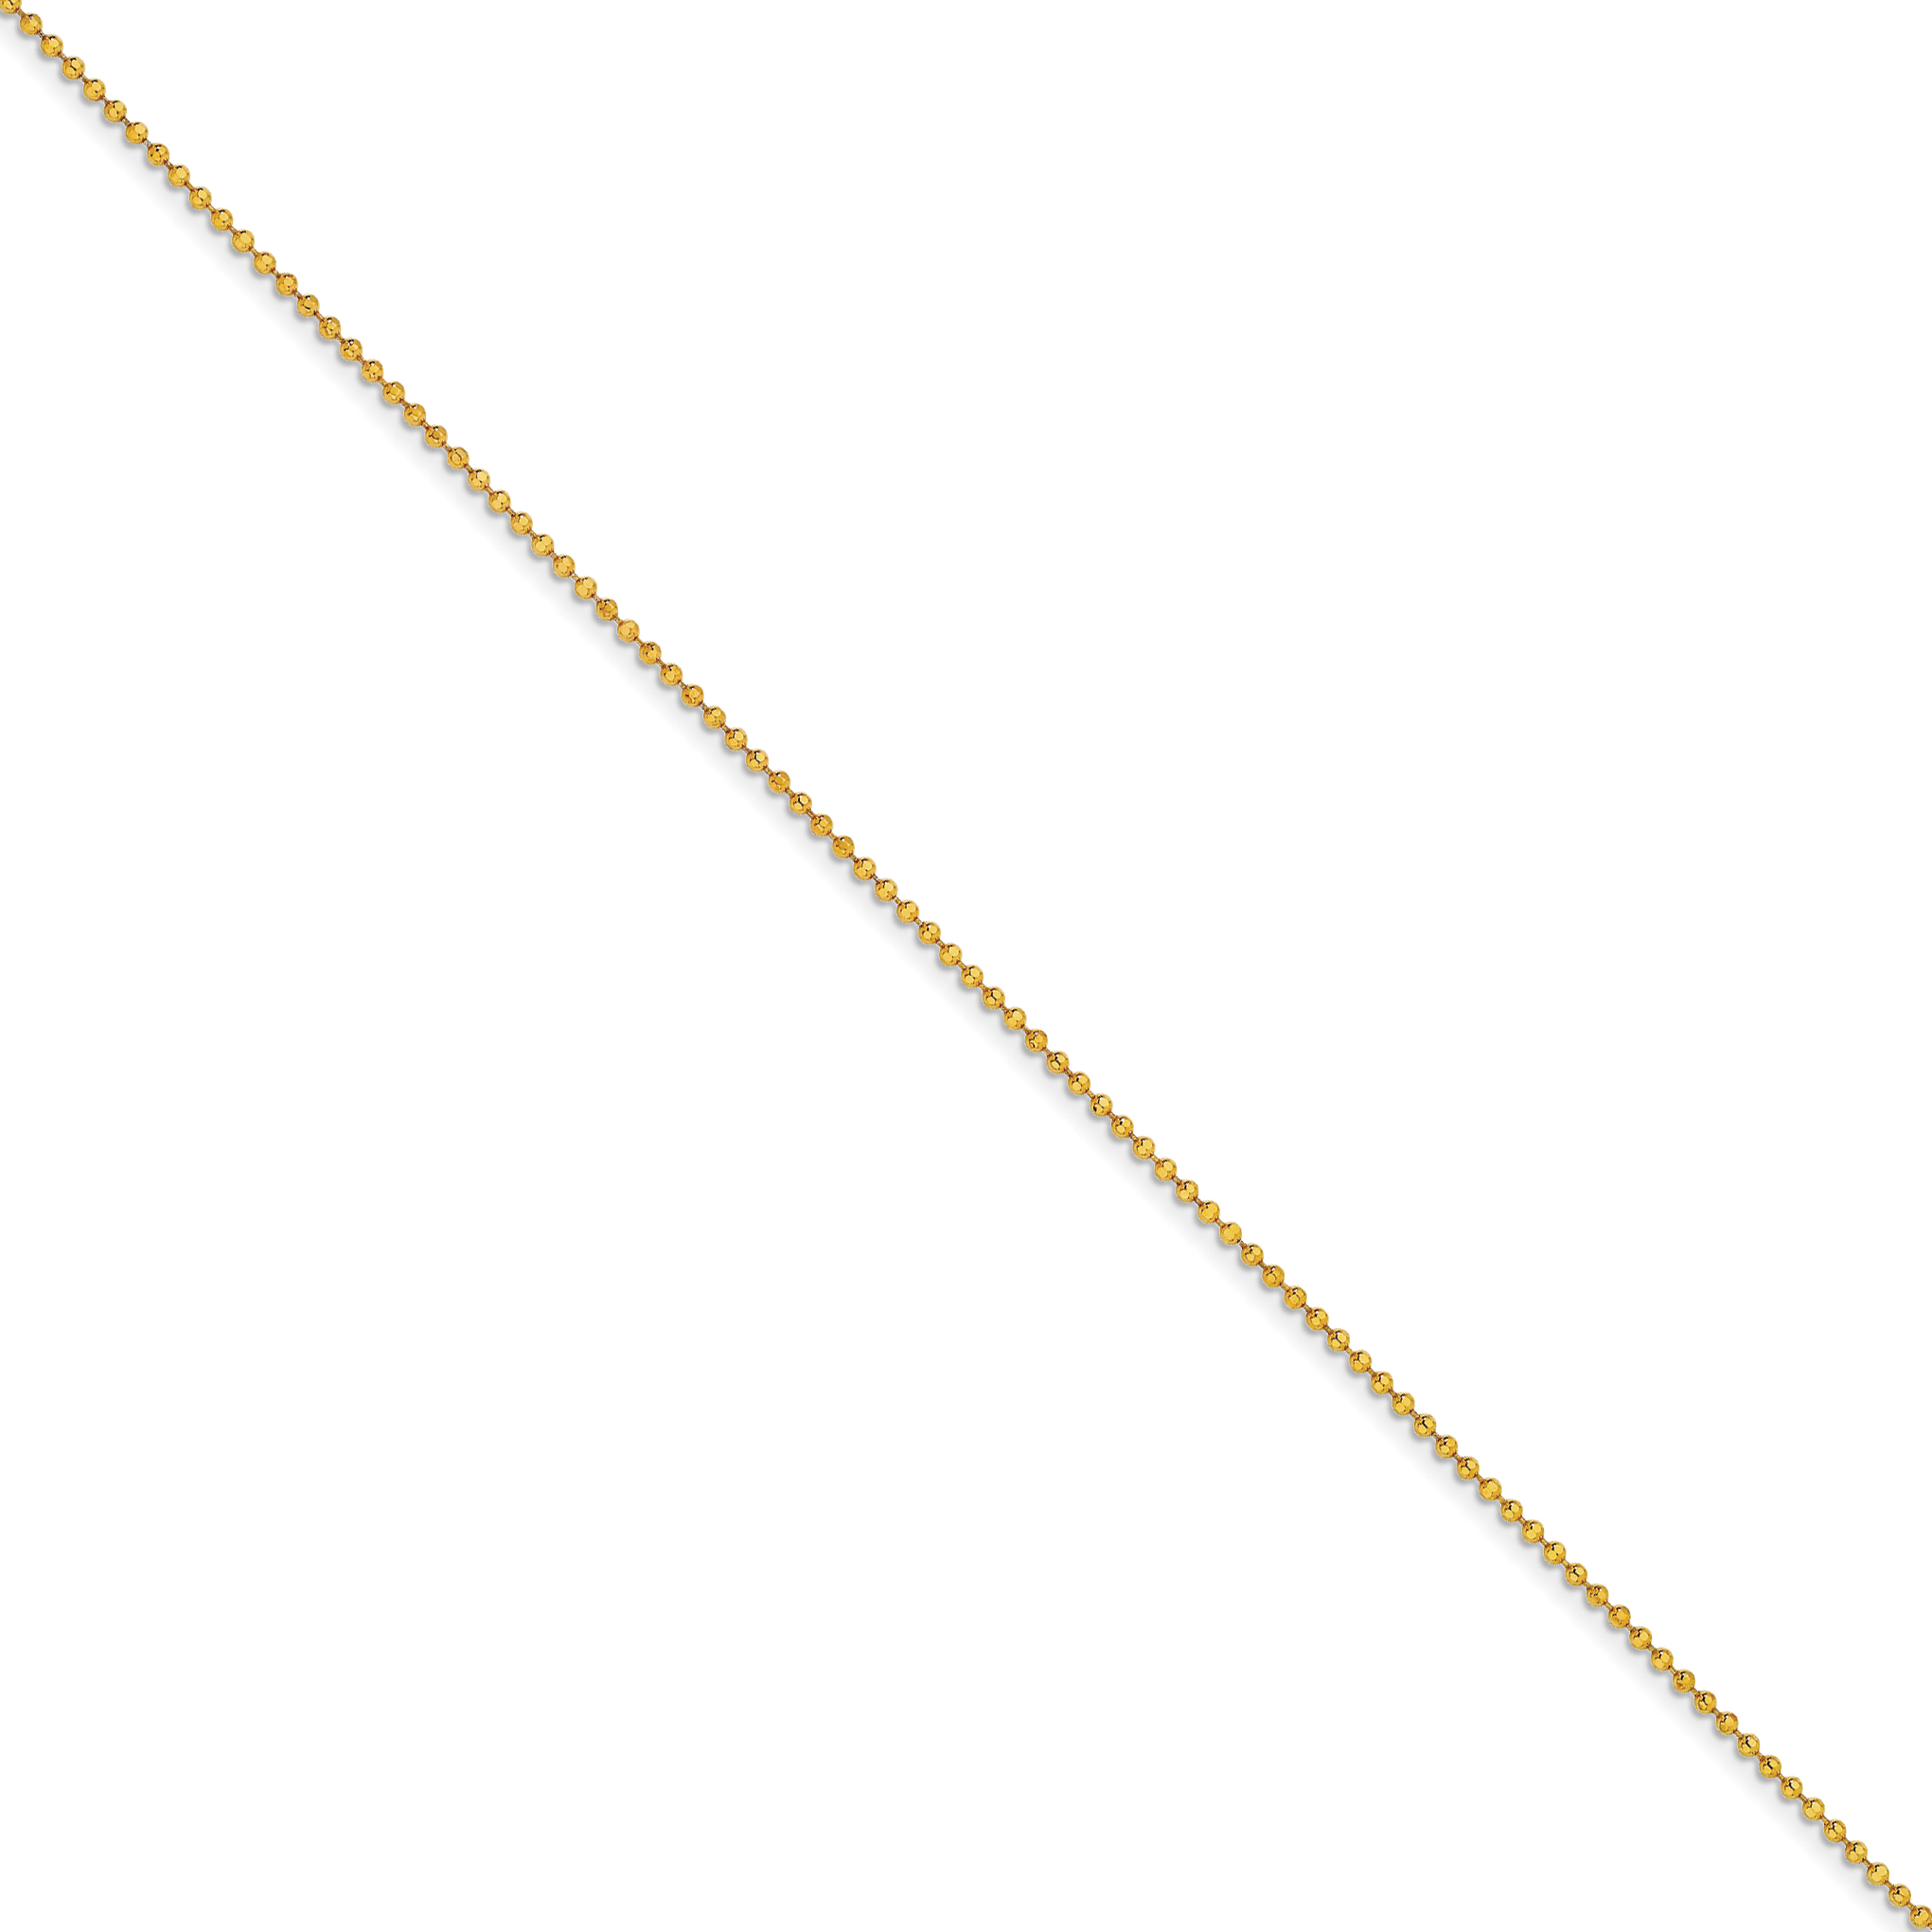 Yellow Over Brass 2mm Plated Ball Chain Necklace 16 Inch Pendant Charm Beadsed Fashion Jewelry Gifts For Women For Her - image 3 de 3